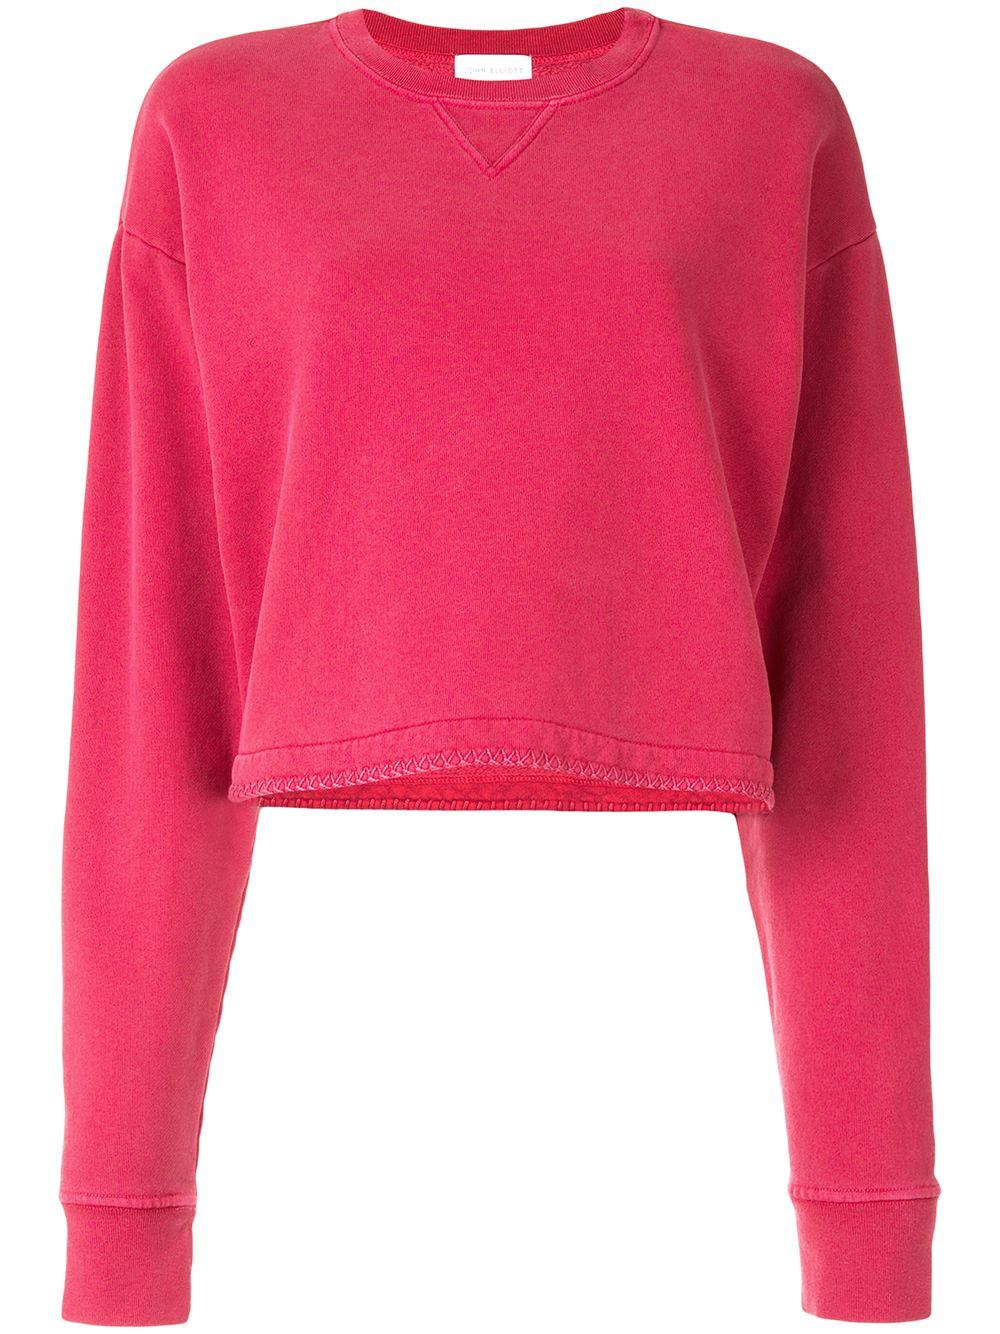 Embroidered Cropped Sweatshirt Item # WB116B24632A